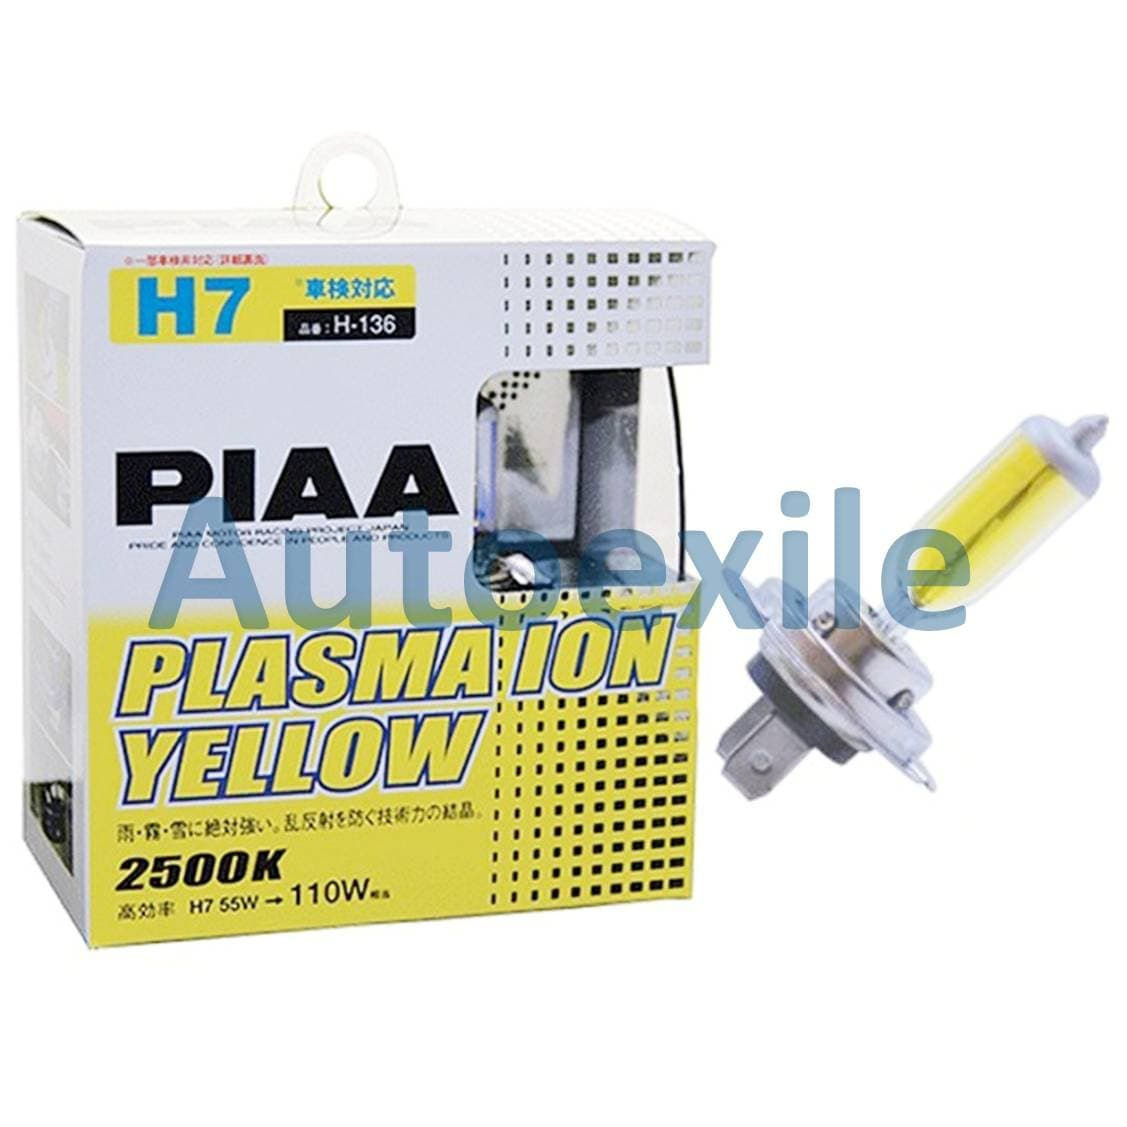 Jual Piaa Plasma Ion Yellow H7 55w Output 110w 2500k Kuning Terang Philips X Treme Vision Plus H4 12v 60 3700k P43t 38 Lampu Depan Mobil Made In Japan